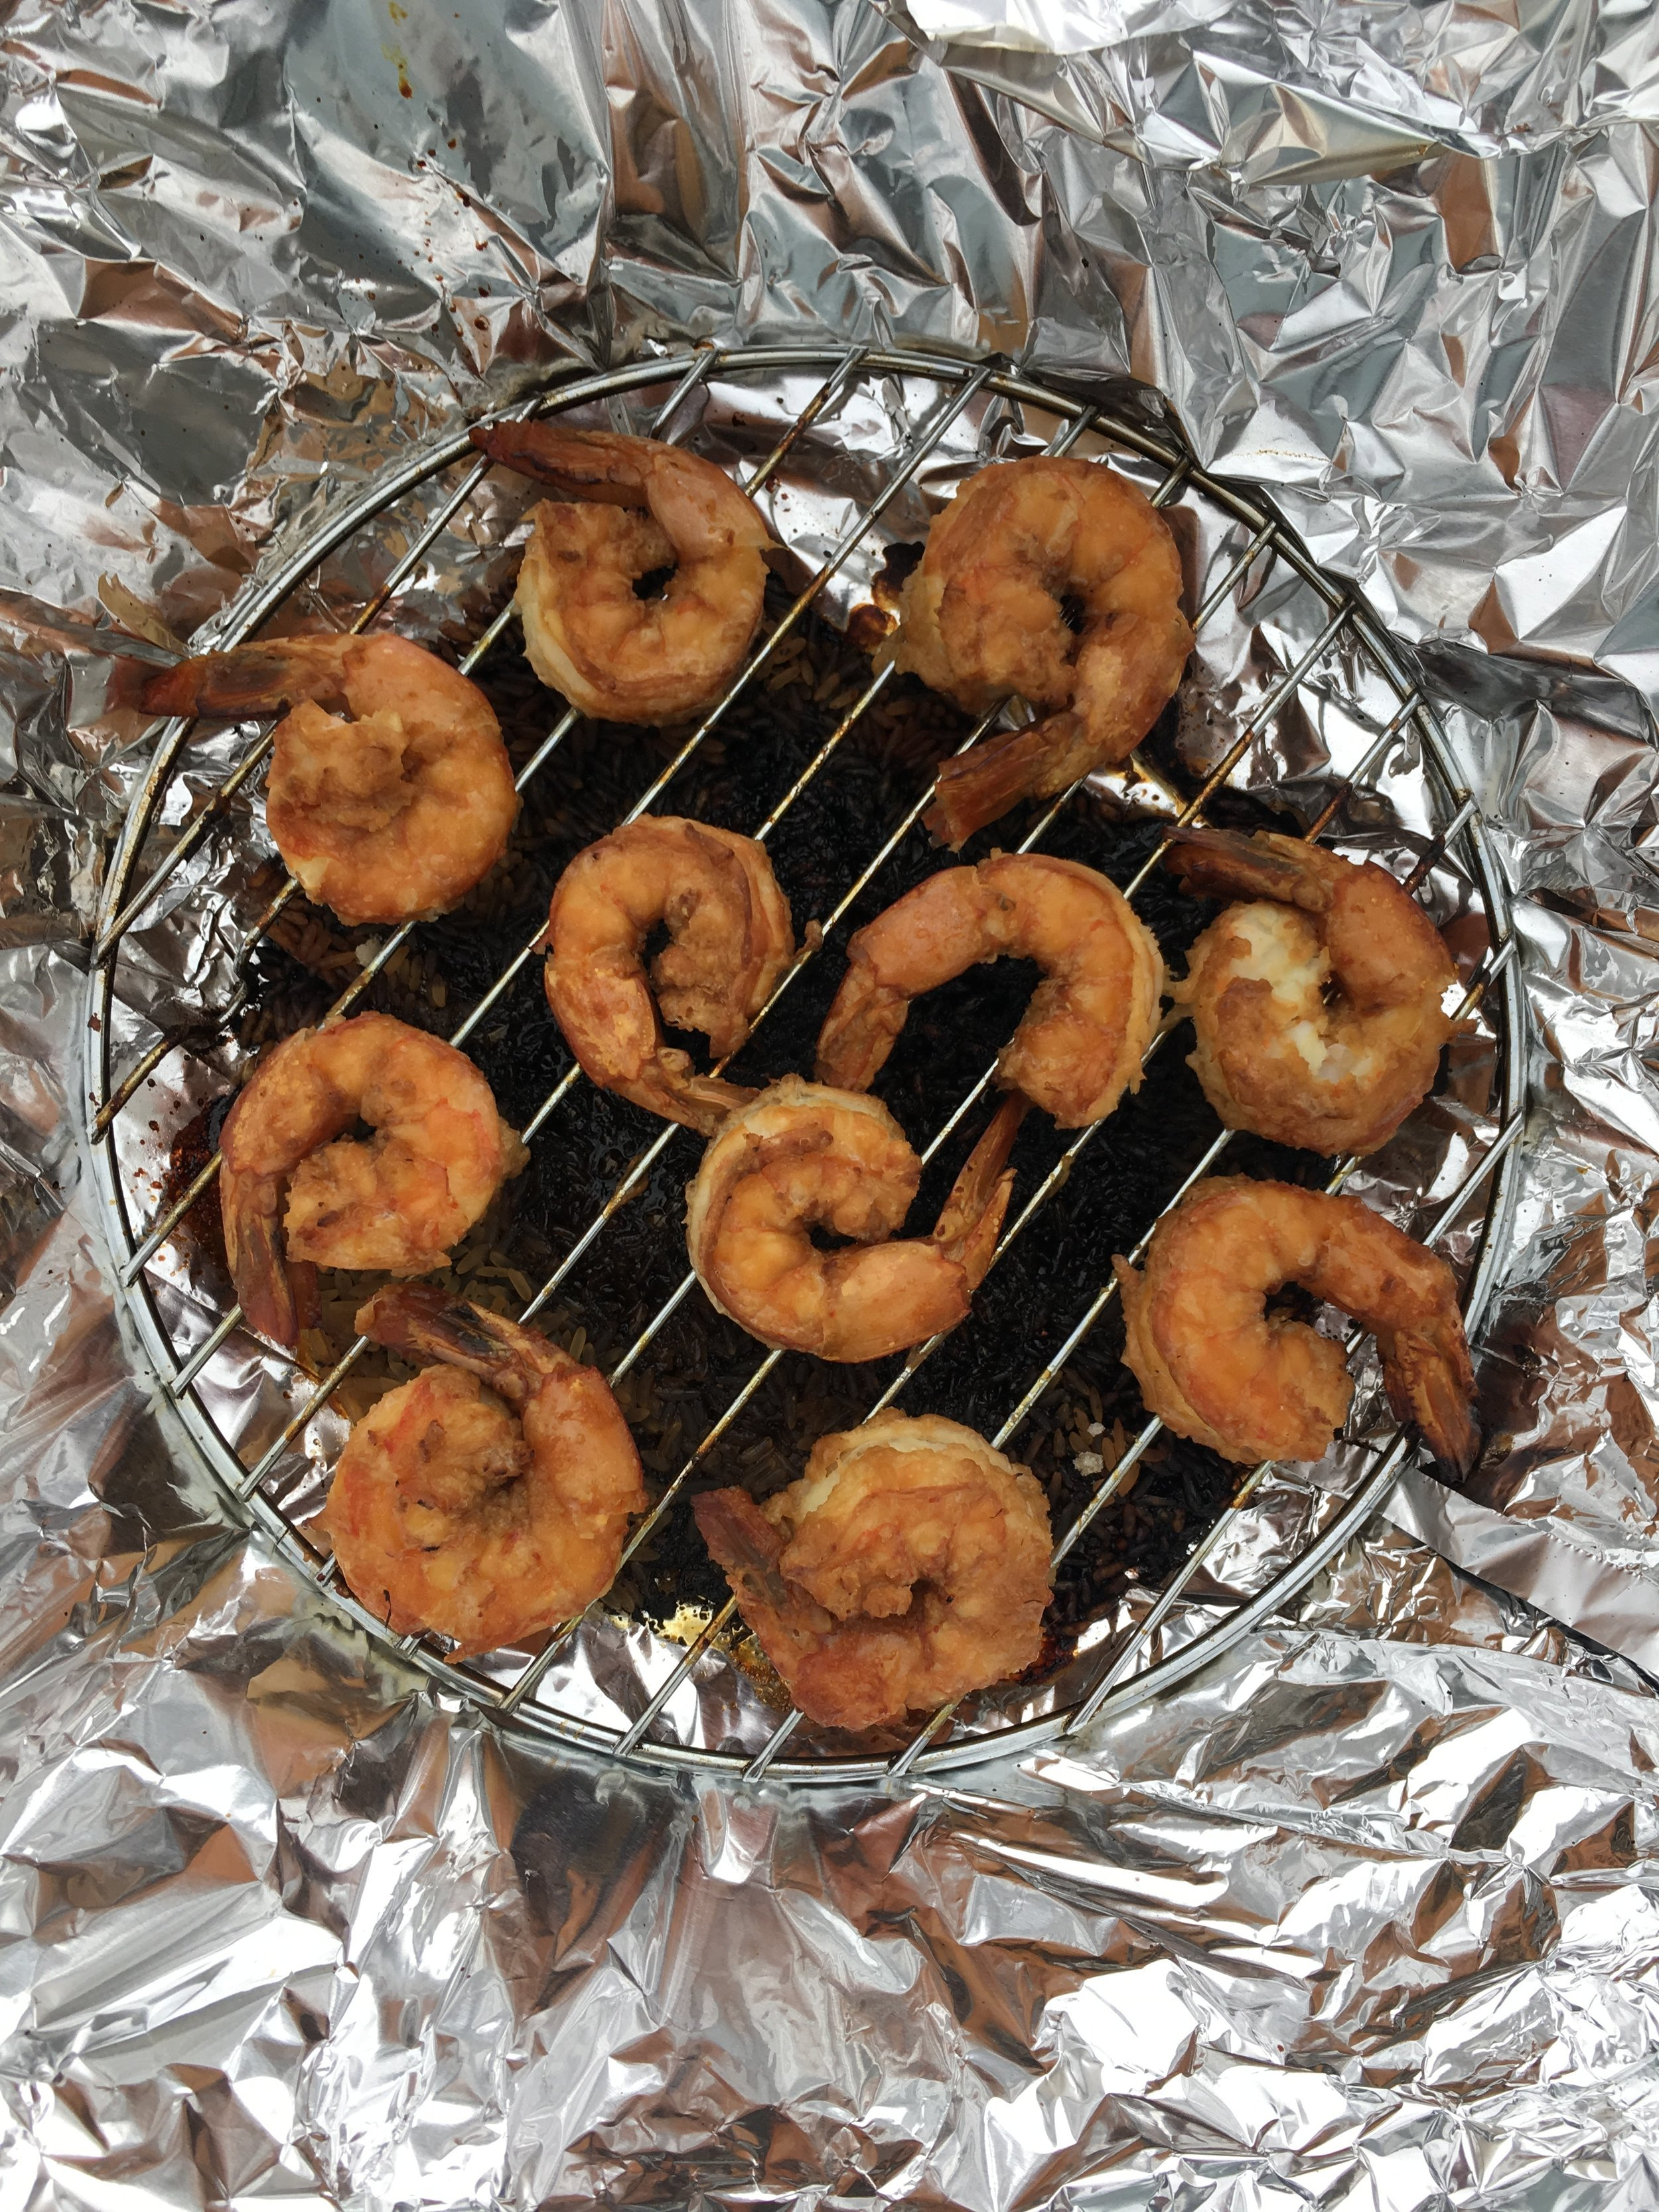 After just 10 minutes you have delicious smoked shrimp!